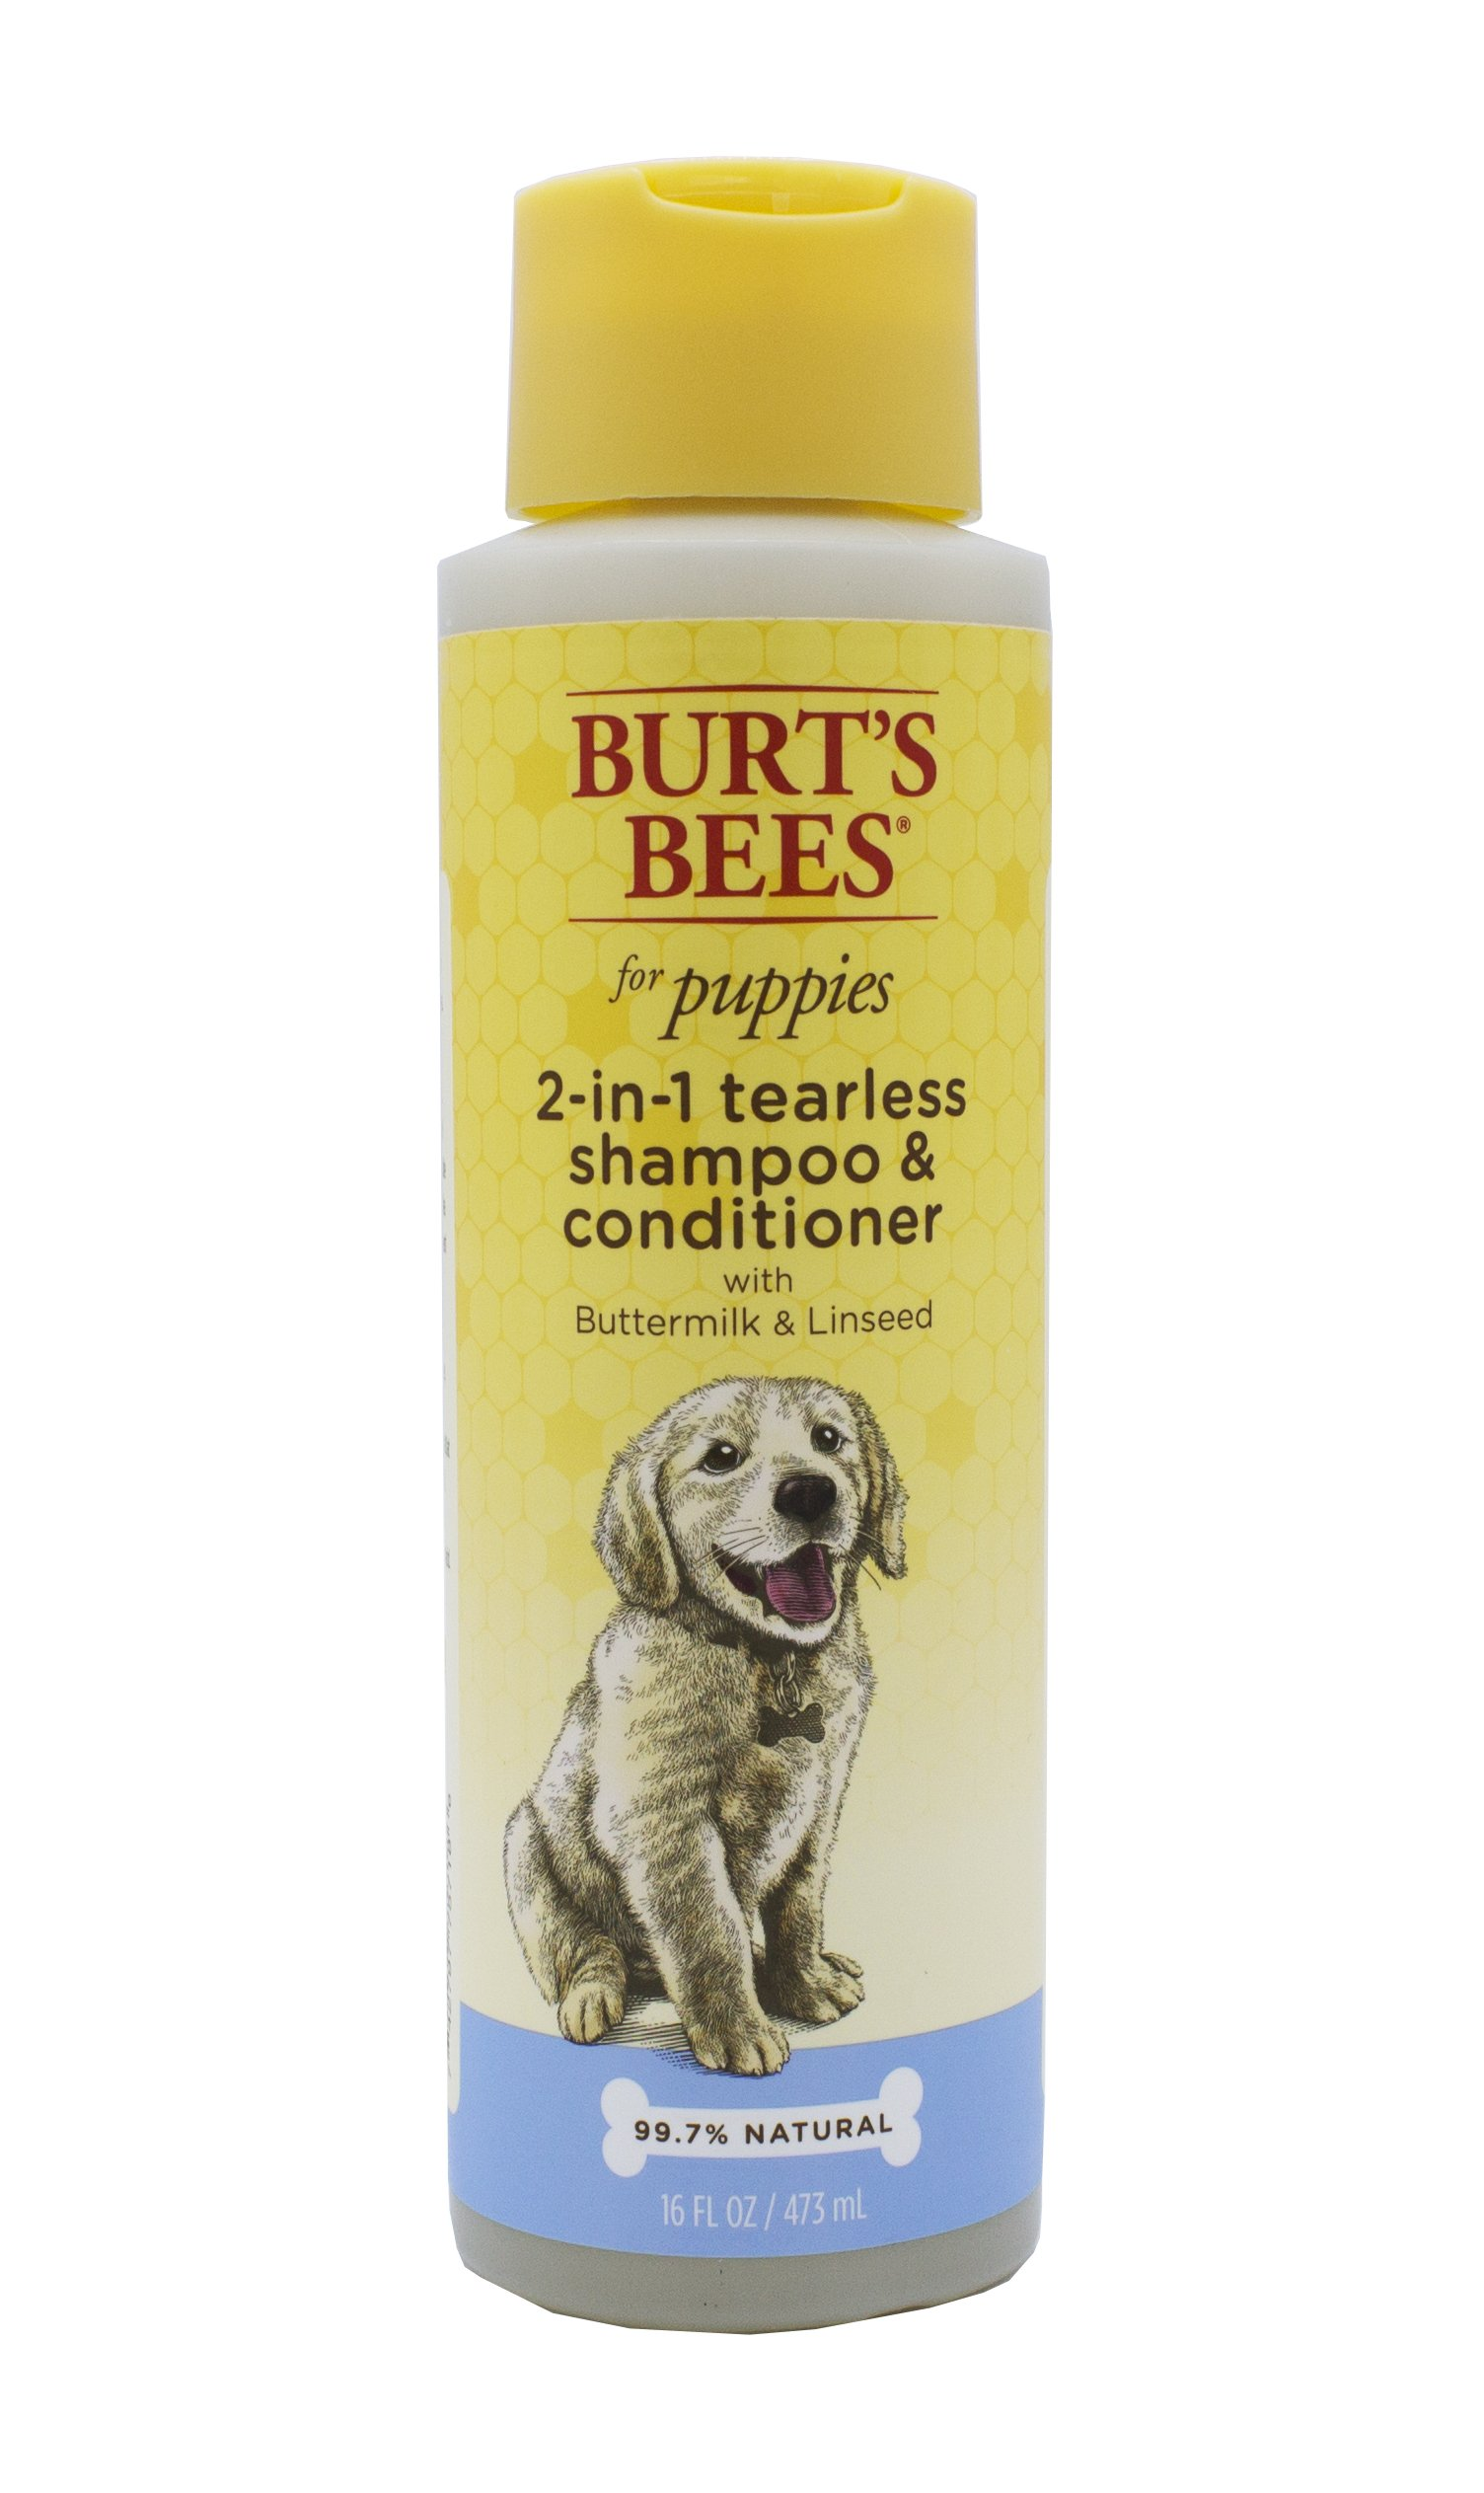 Burt's Bees for Pets for Puppies Tearless 2 in 1 Shampoo and Conditioner with Buttermilk and Linseed Oil | Dog Shampoo, 16 Ounces, All-Natural Tearless 2 in 1 Puppy Shampoo and Conditioner with Buttermilk and Linseed Oil | Best Tear-Free Shampoo and Conditioner for All Dogs and Puppies for Gentle Fur